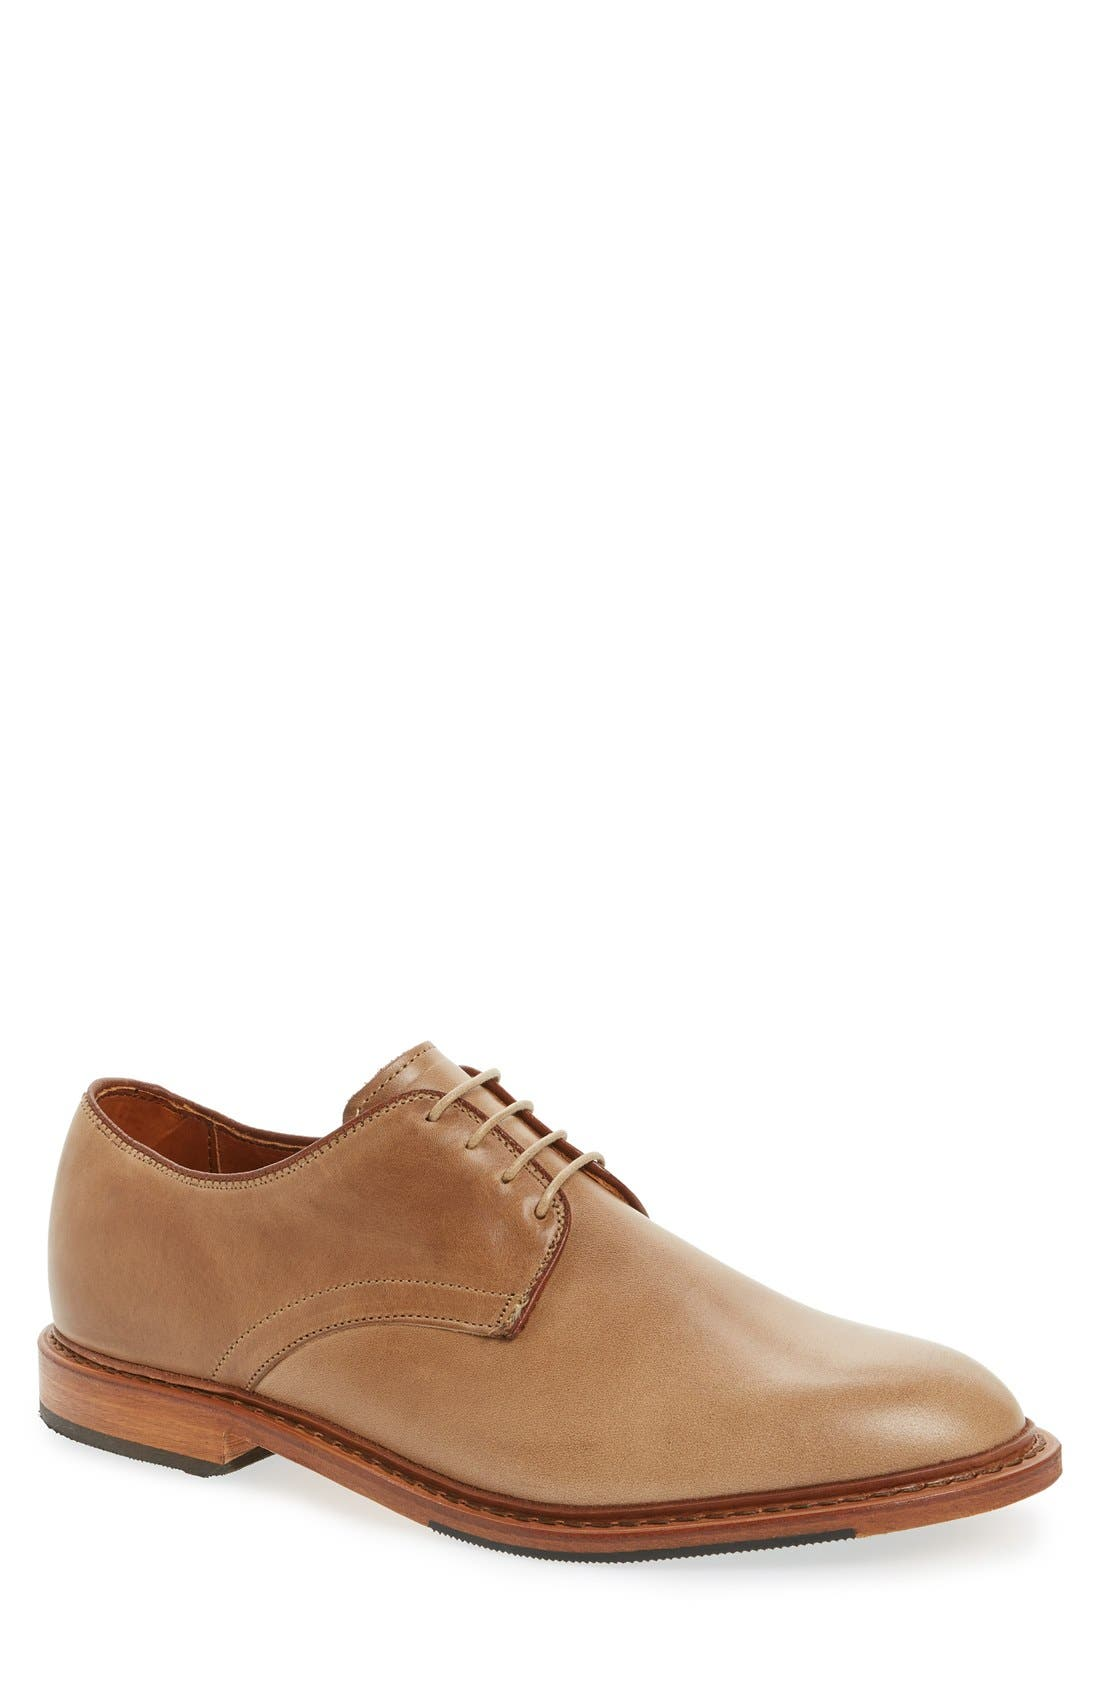 Academy Plain Toe Derby,                             Main thumbnail 1, color,                             Natural Leather